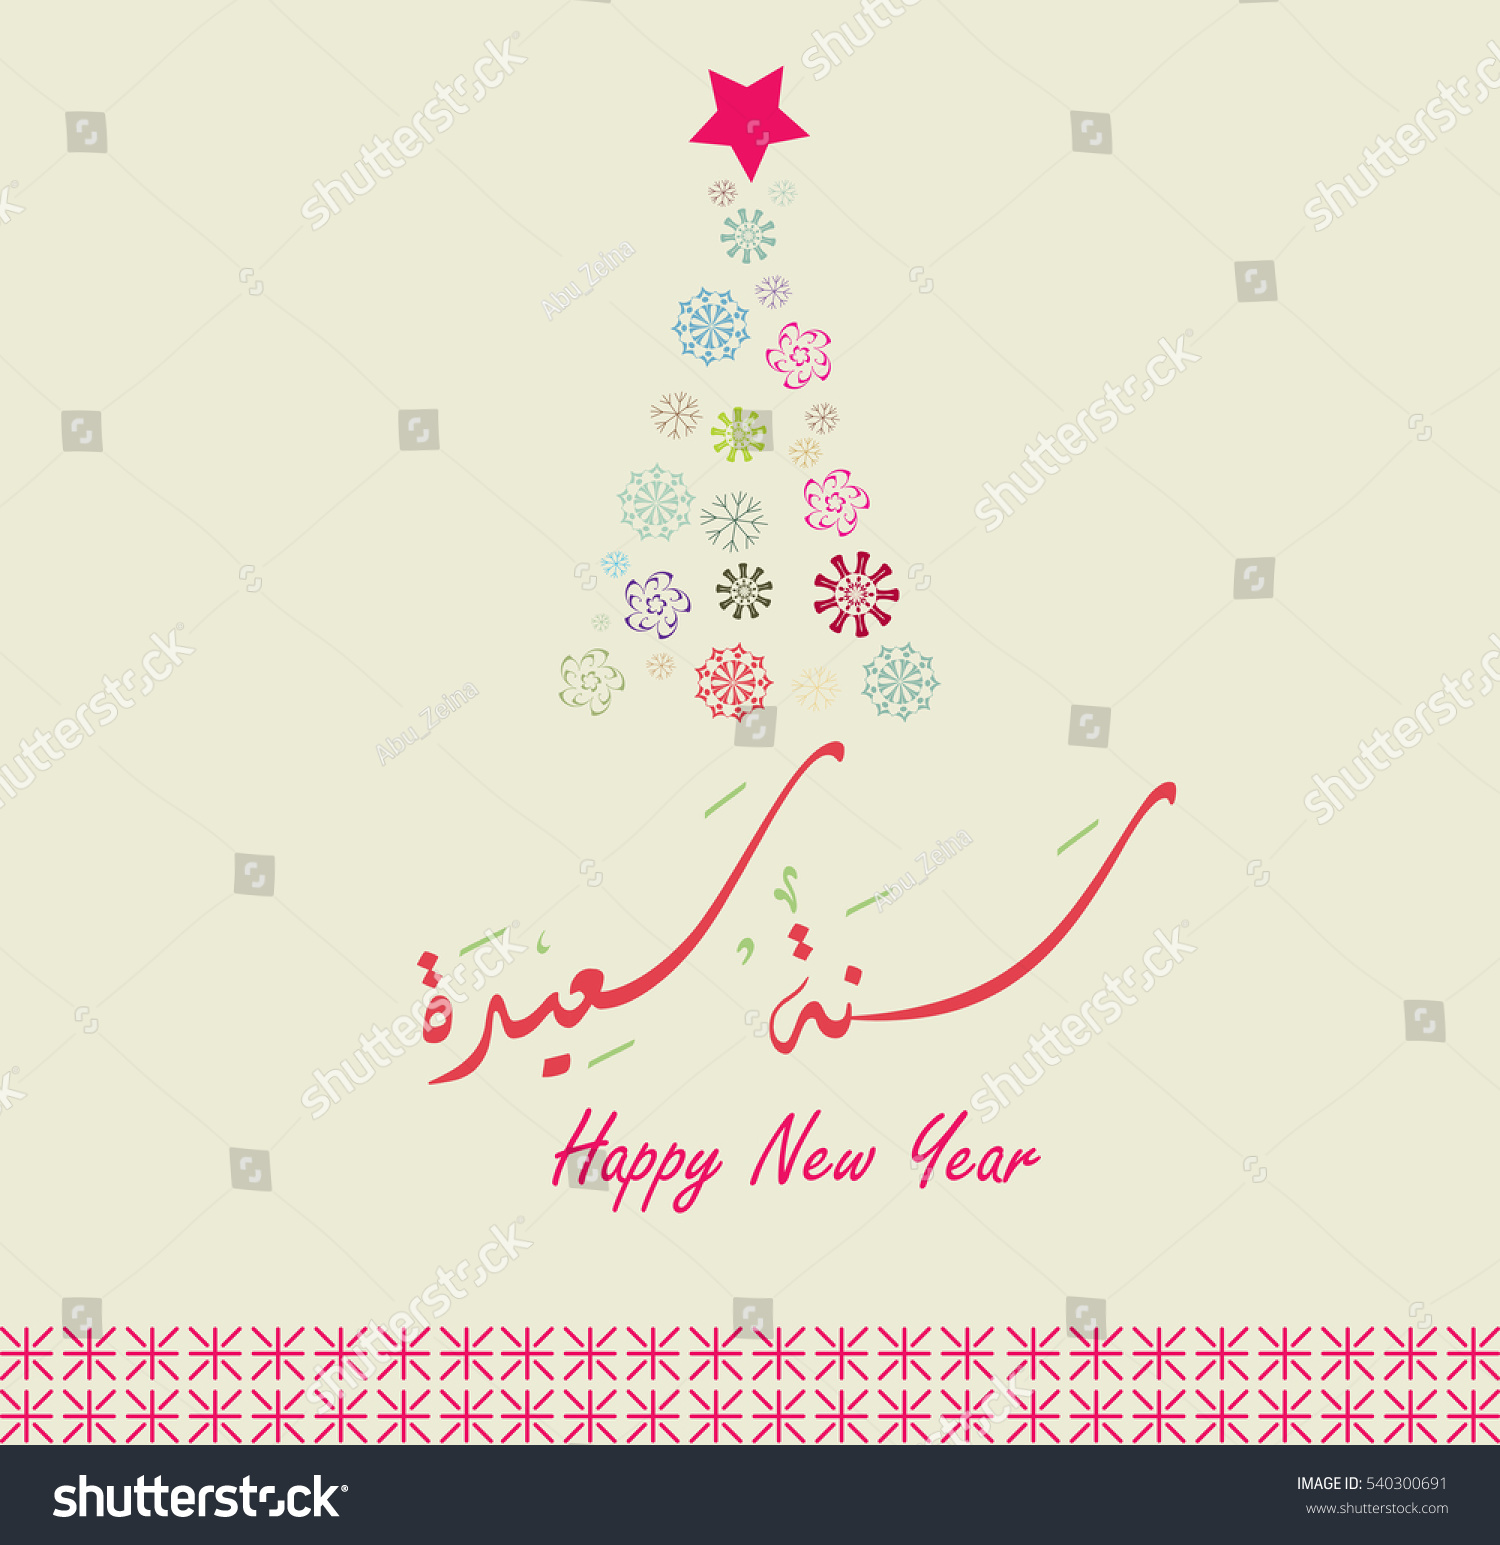 Happy New Year Greeting Card Traditional Stock Vector 540300691